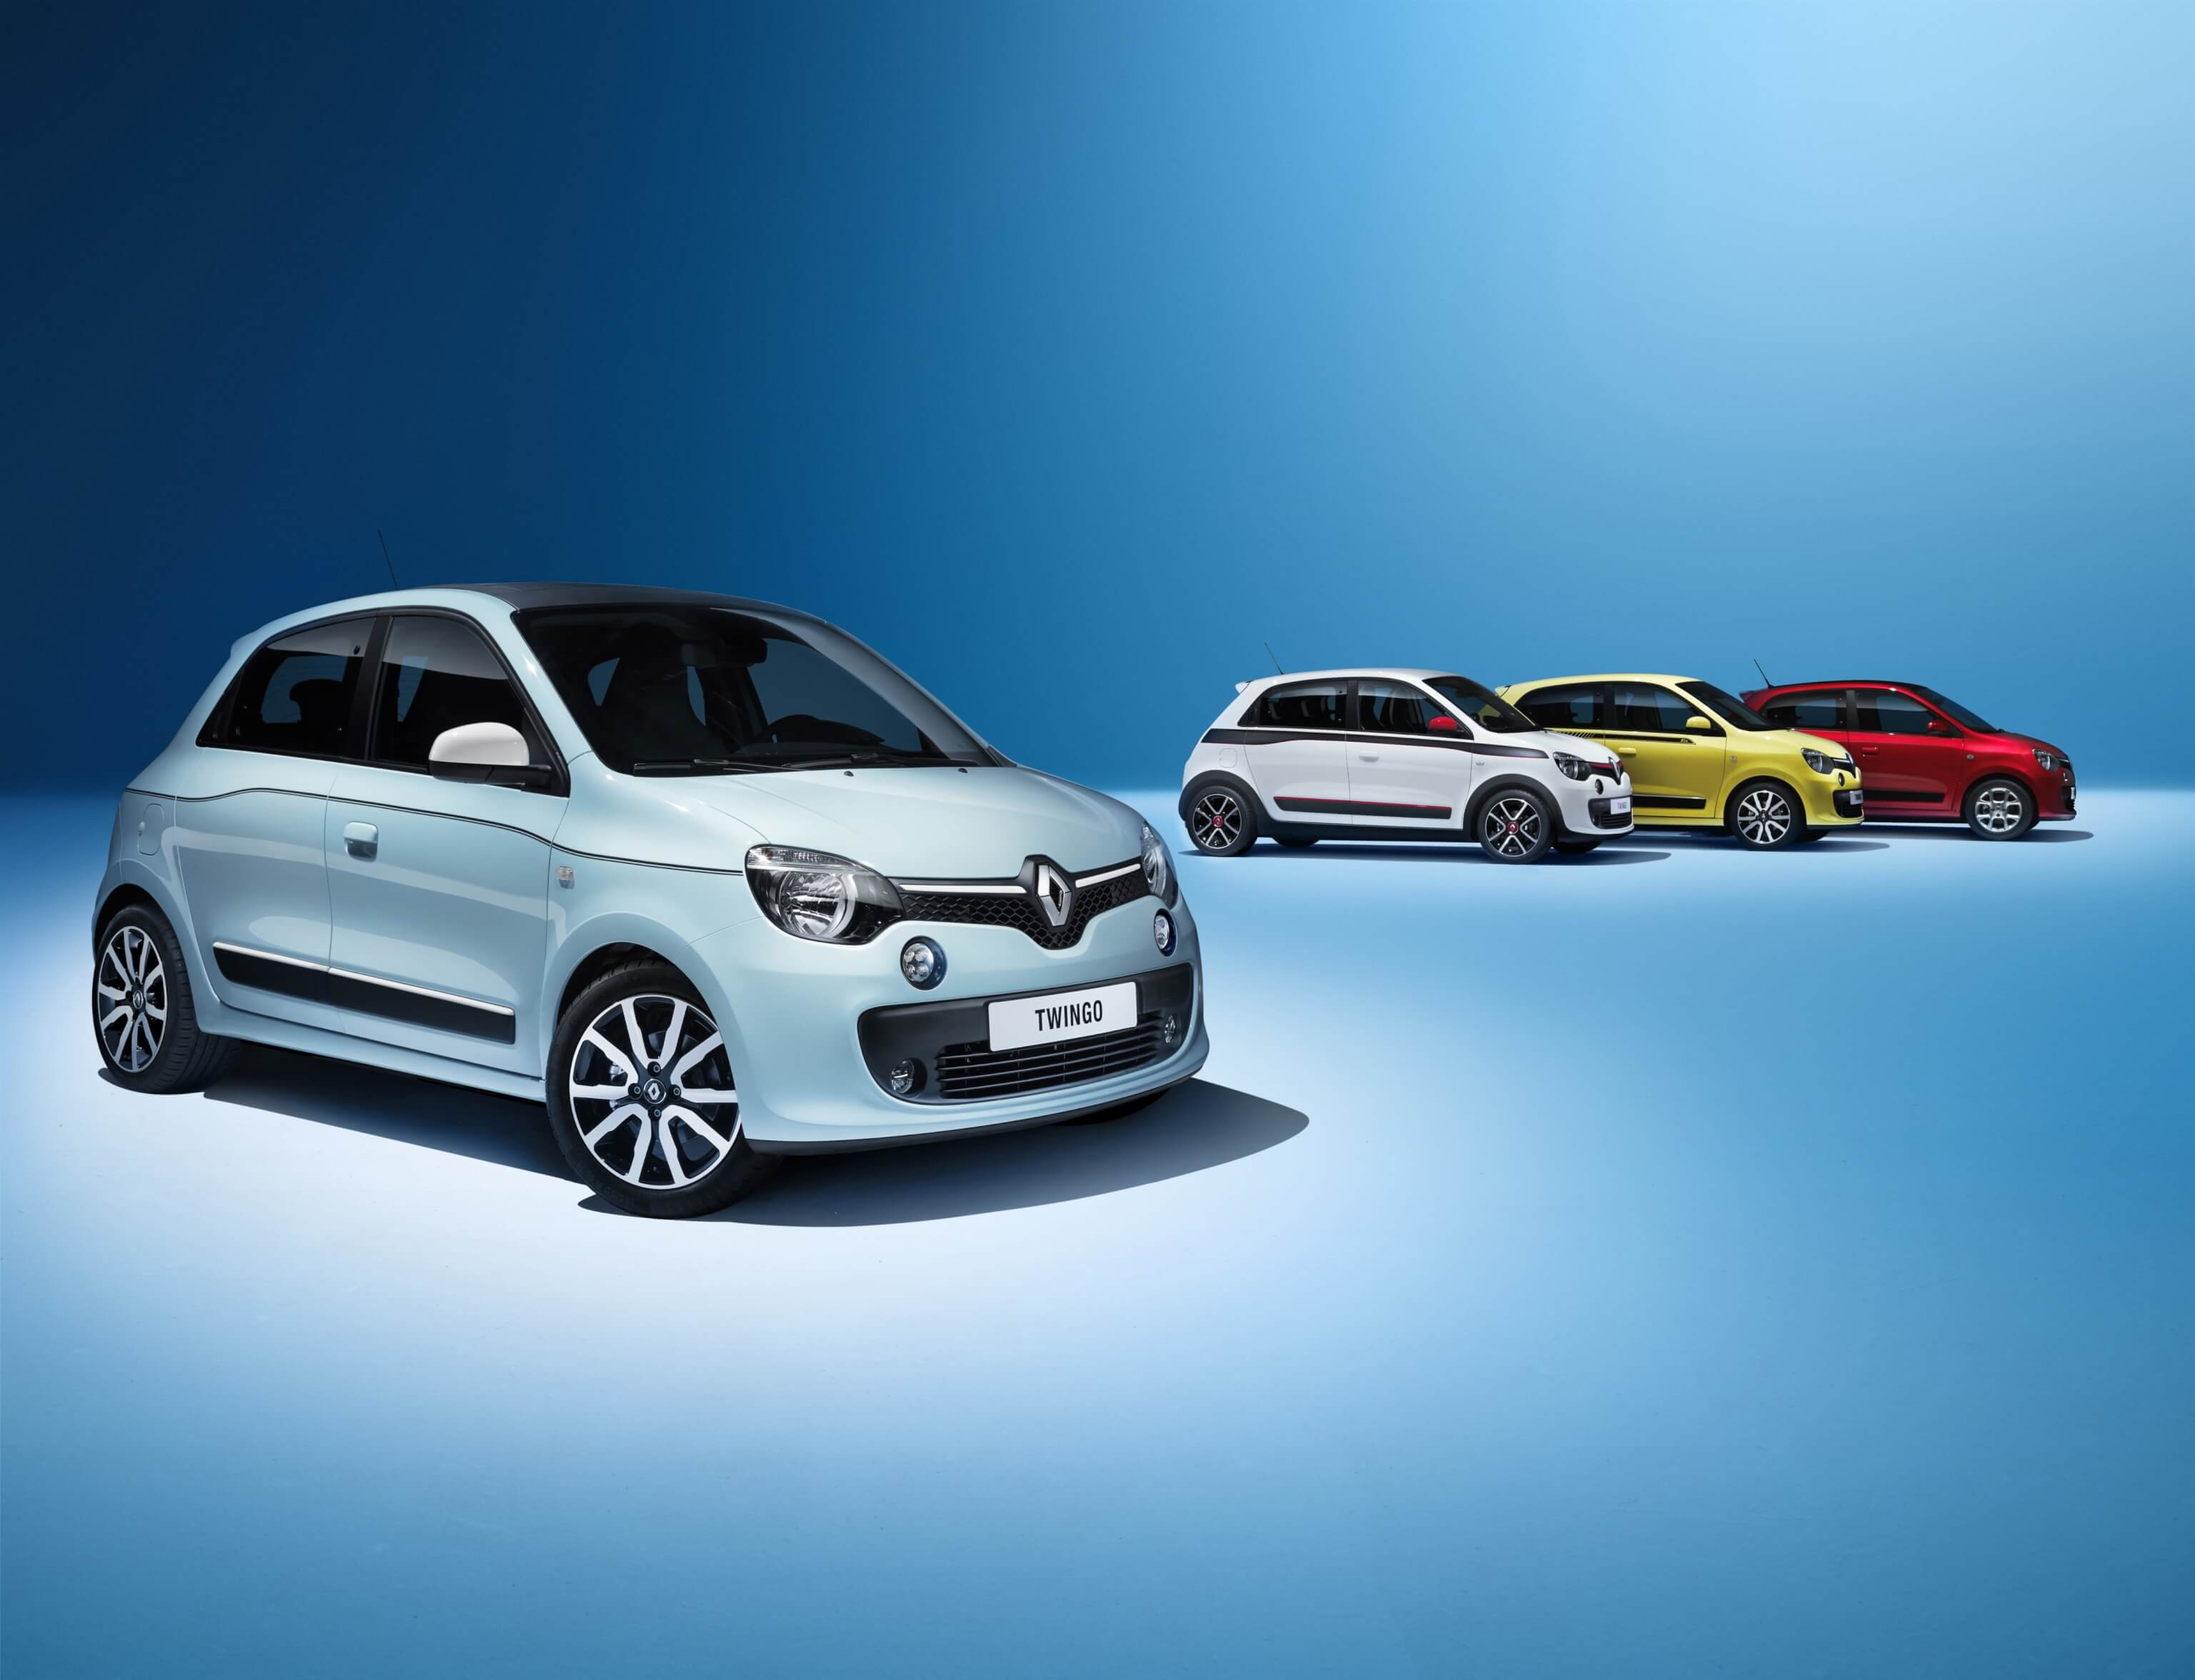 Renault Twingo Limited SCe 75